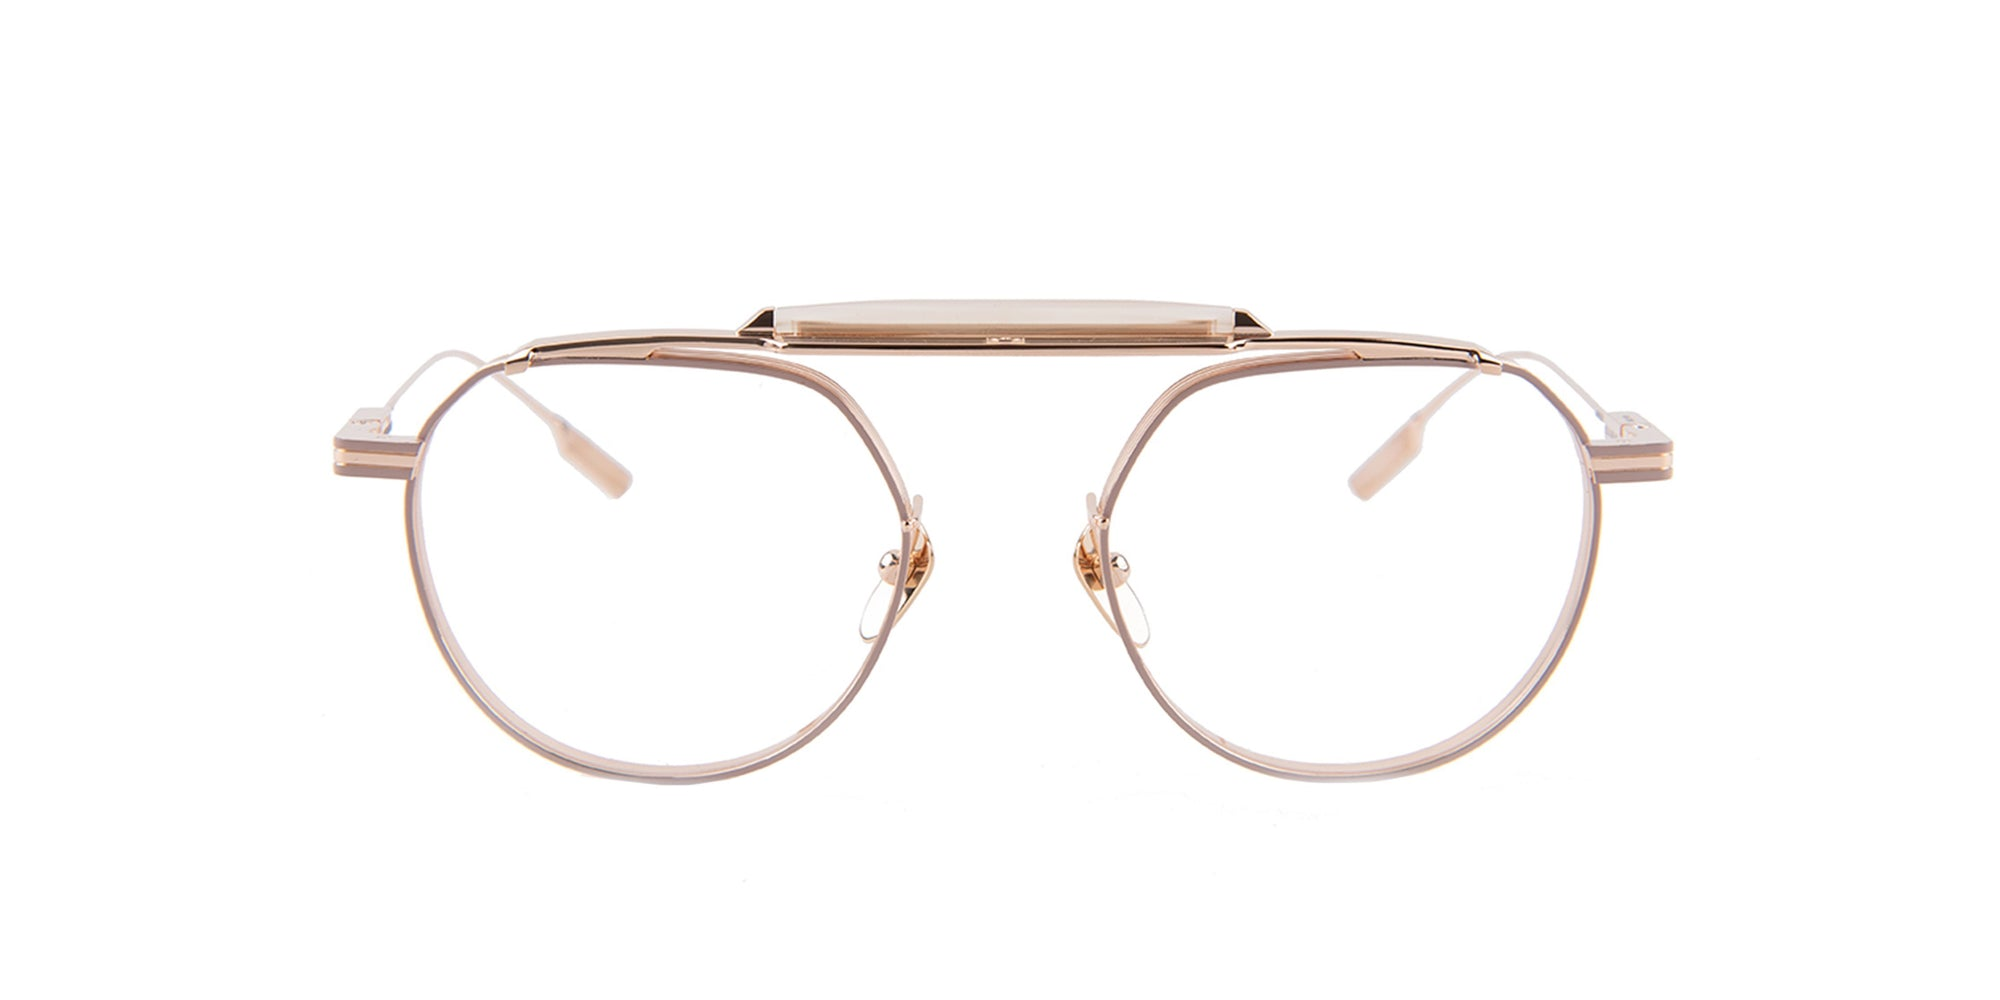 Jacques Marie Mage - Quanah Rose Gold/Rose Gold Oval Unisex Eyeglasses - 60mm-Eyeglasses-Designer Eyes